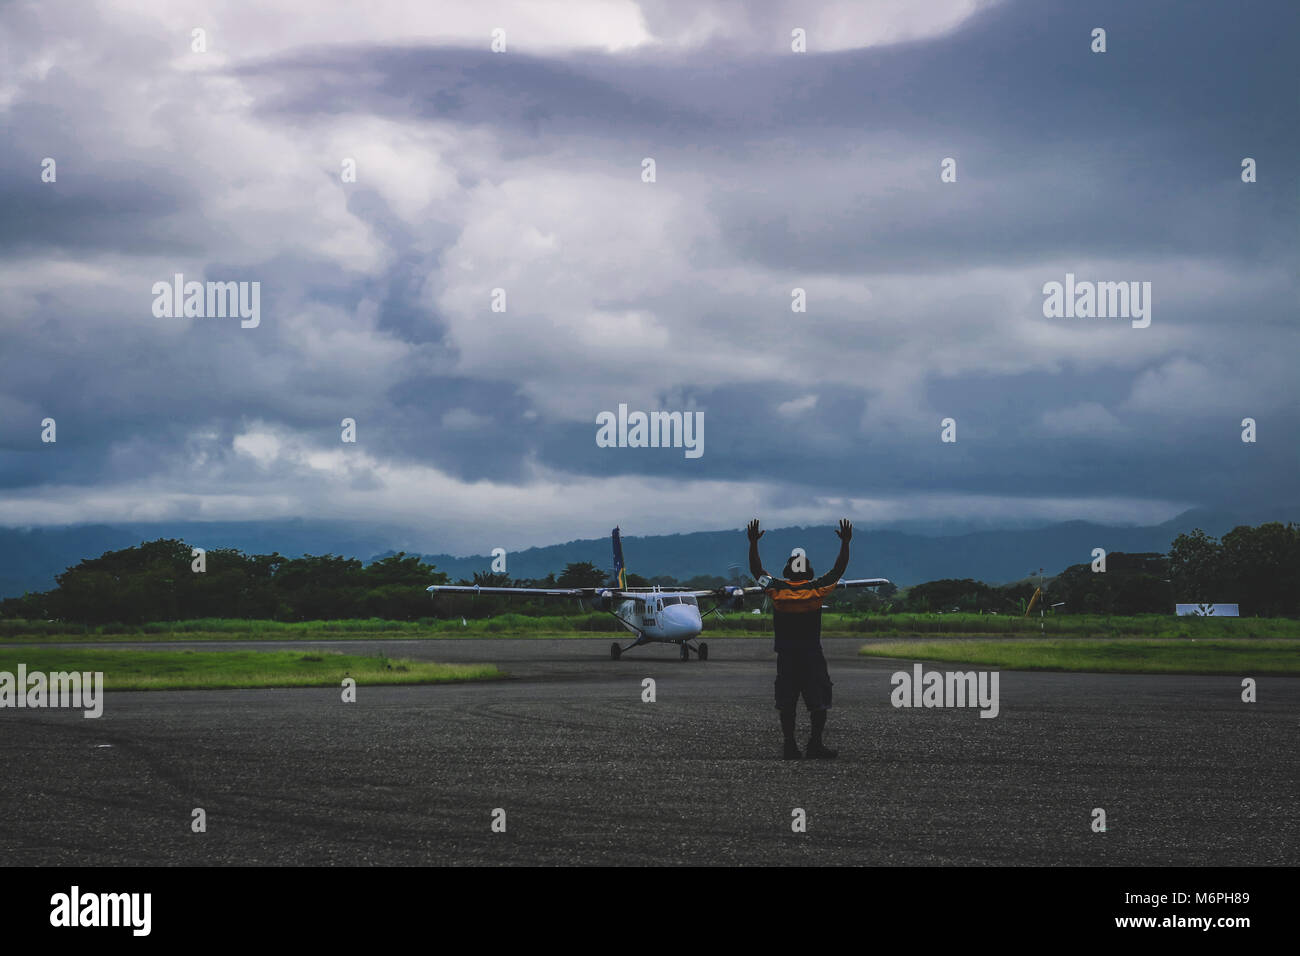 Air traffic control directing a Twin Otter into the arrival bay at Honiara airport - Stock Image